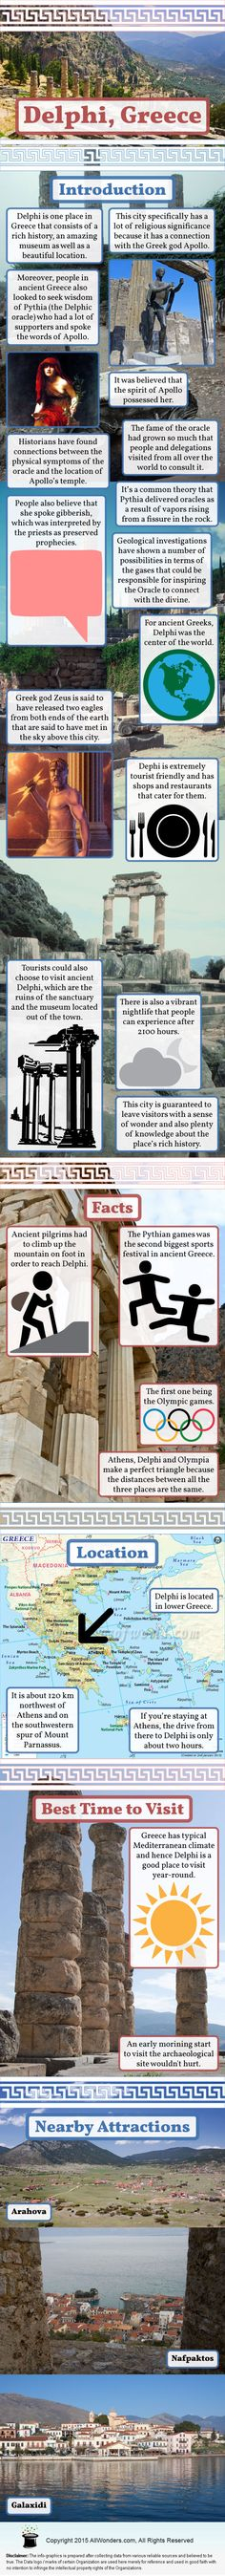 The Delphi Infographic provides Travel Information about Delphi in Greece. Find out it's Location, Facts, Best time to visit , Nearby Attractions and more.